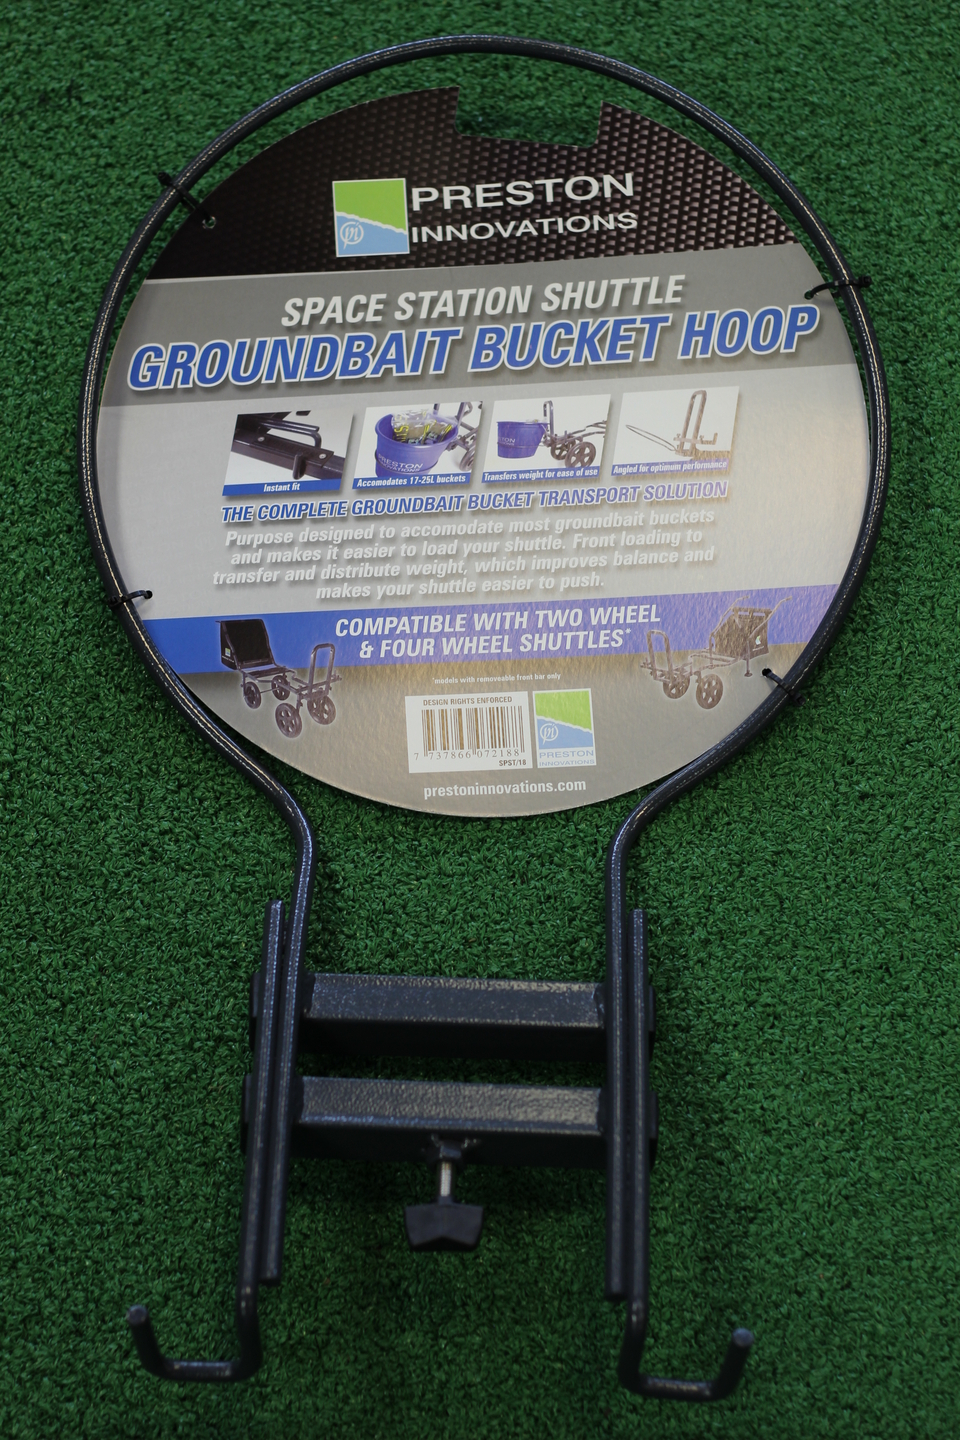 Preston Innovations Space Station Shuttle Groundbait Bucket Hoop